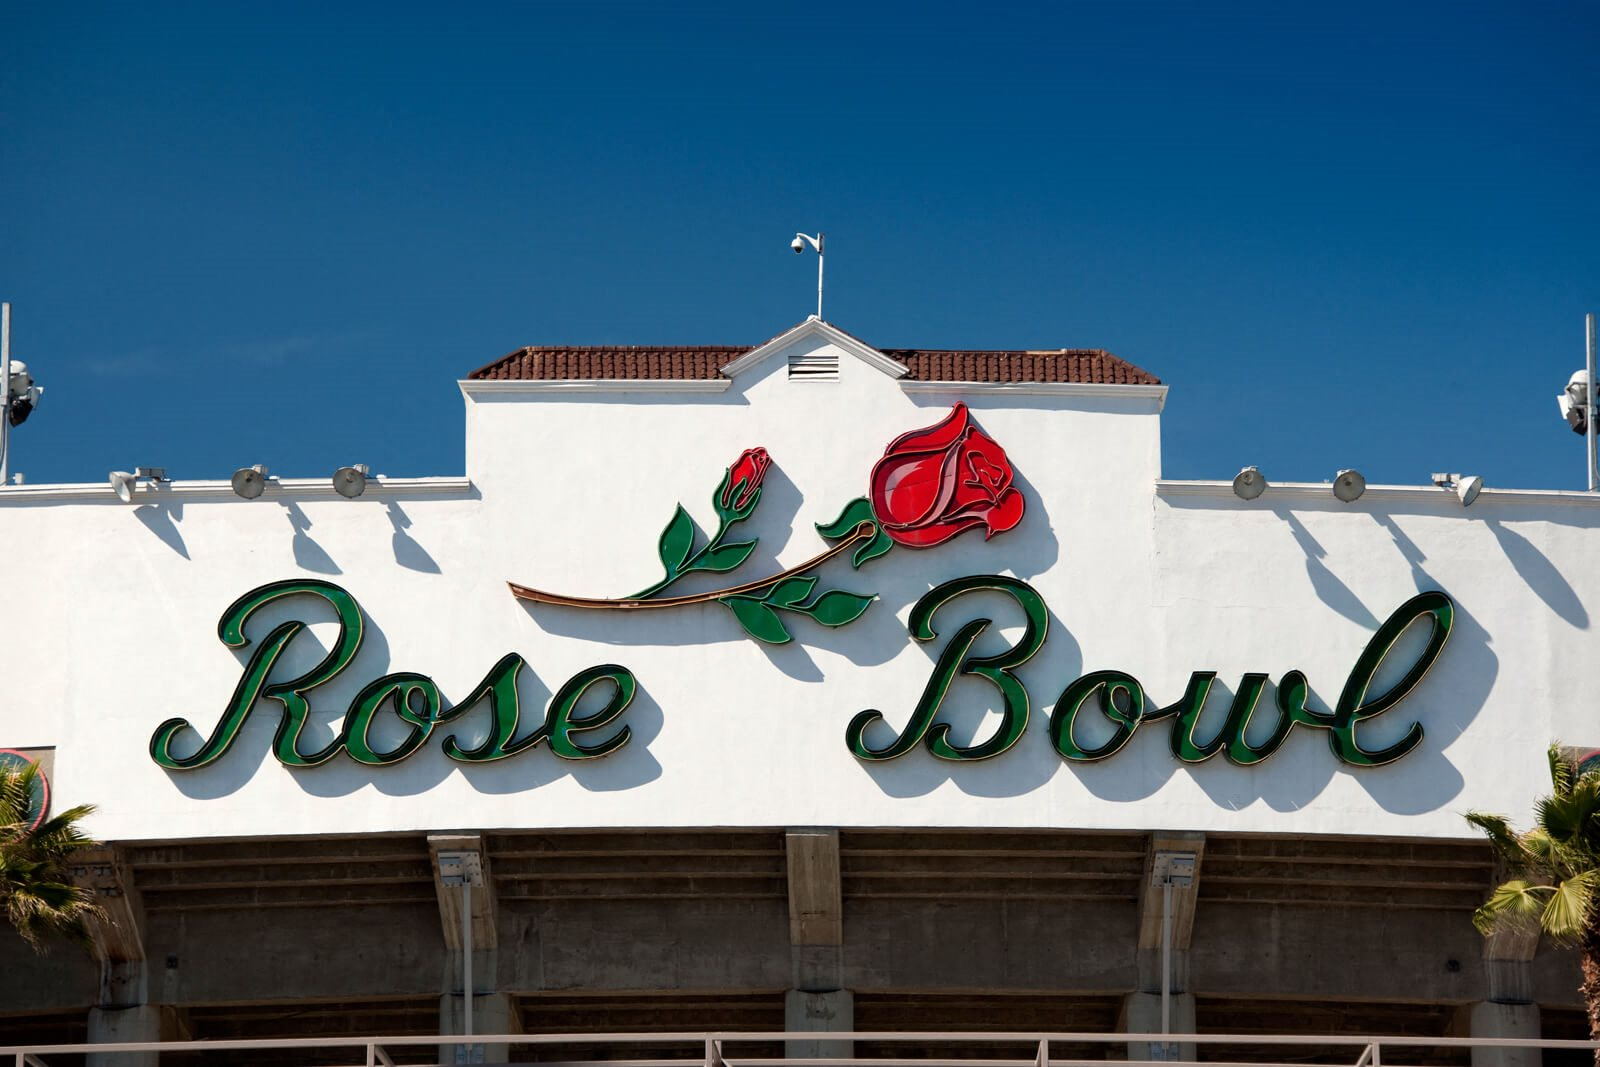 Located just a few miles from Rose Bowl Arena at Terraces at Paseo Colorado, Pasadena, 91101